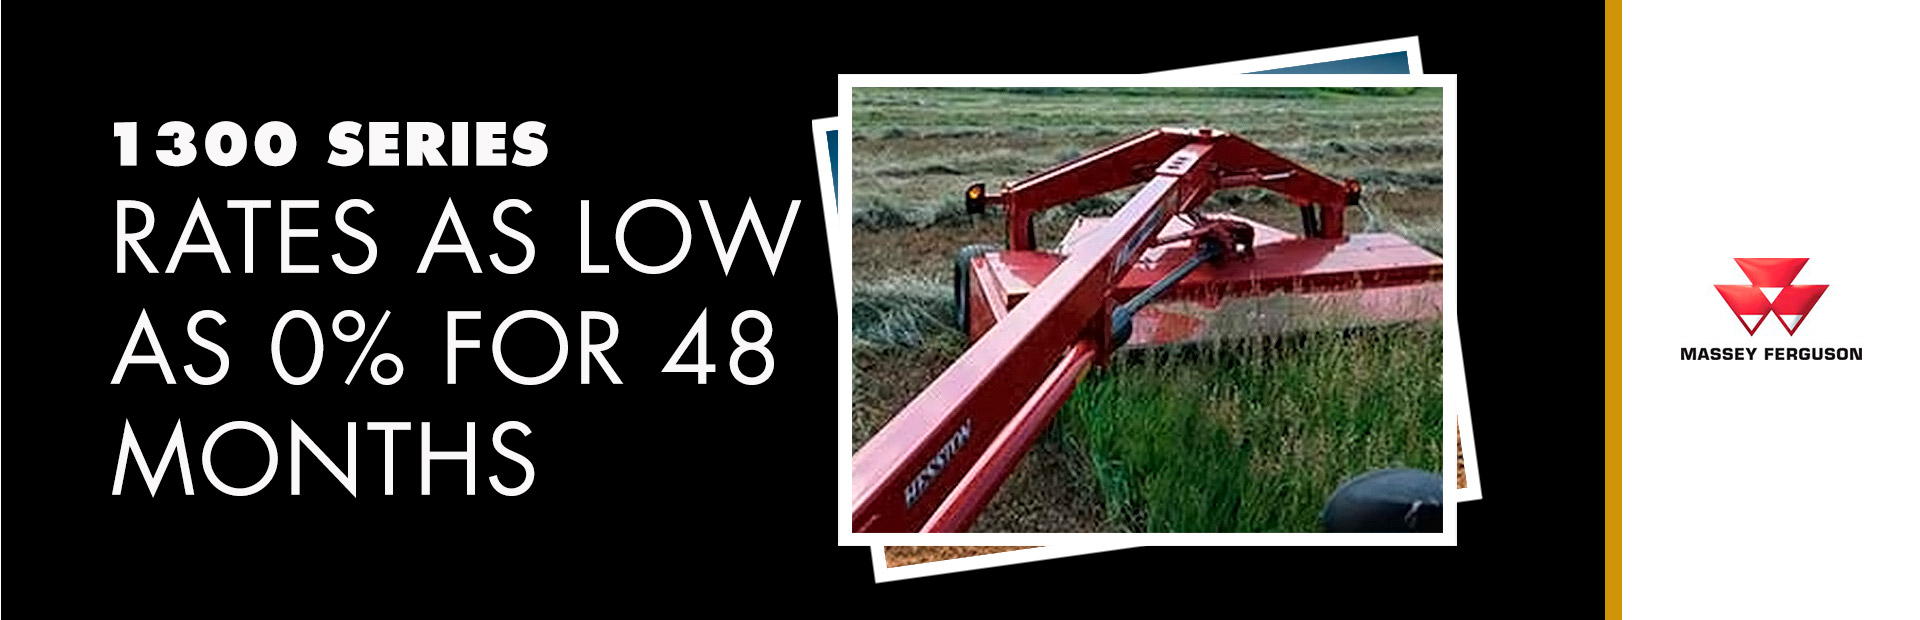 Massey Ferguson: 1300 Series - Rates as low as 0% for 48 Months